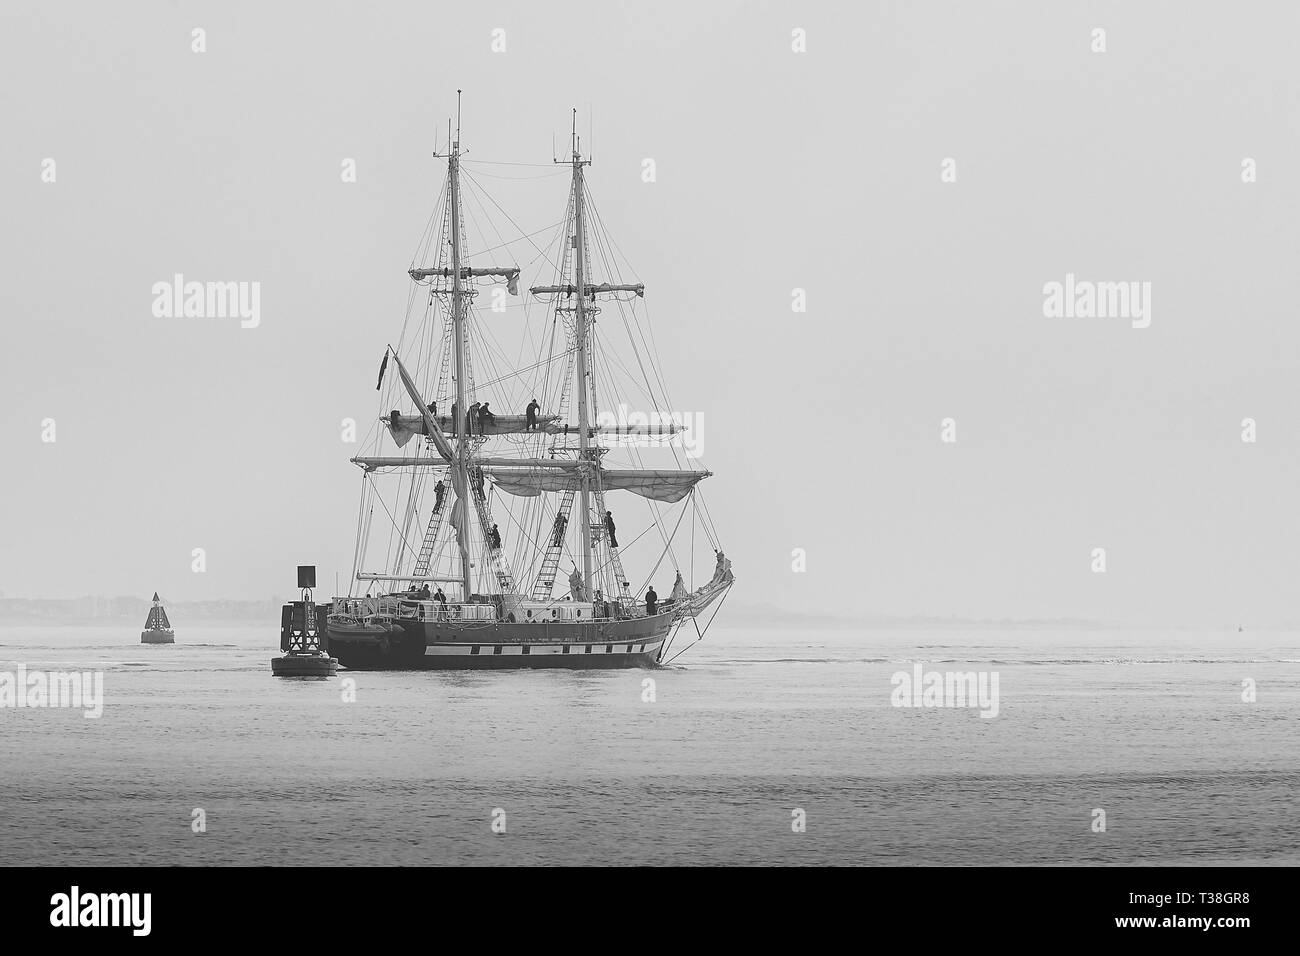 Black And White Image Of Sailors Setting Sail On The Training Ship, TS ROYALIST (Tall Ship), Departing The Port Of Southampton, 28 March 2019. - Stock Image